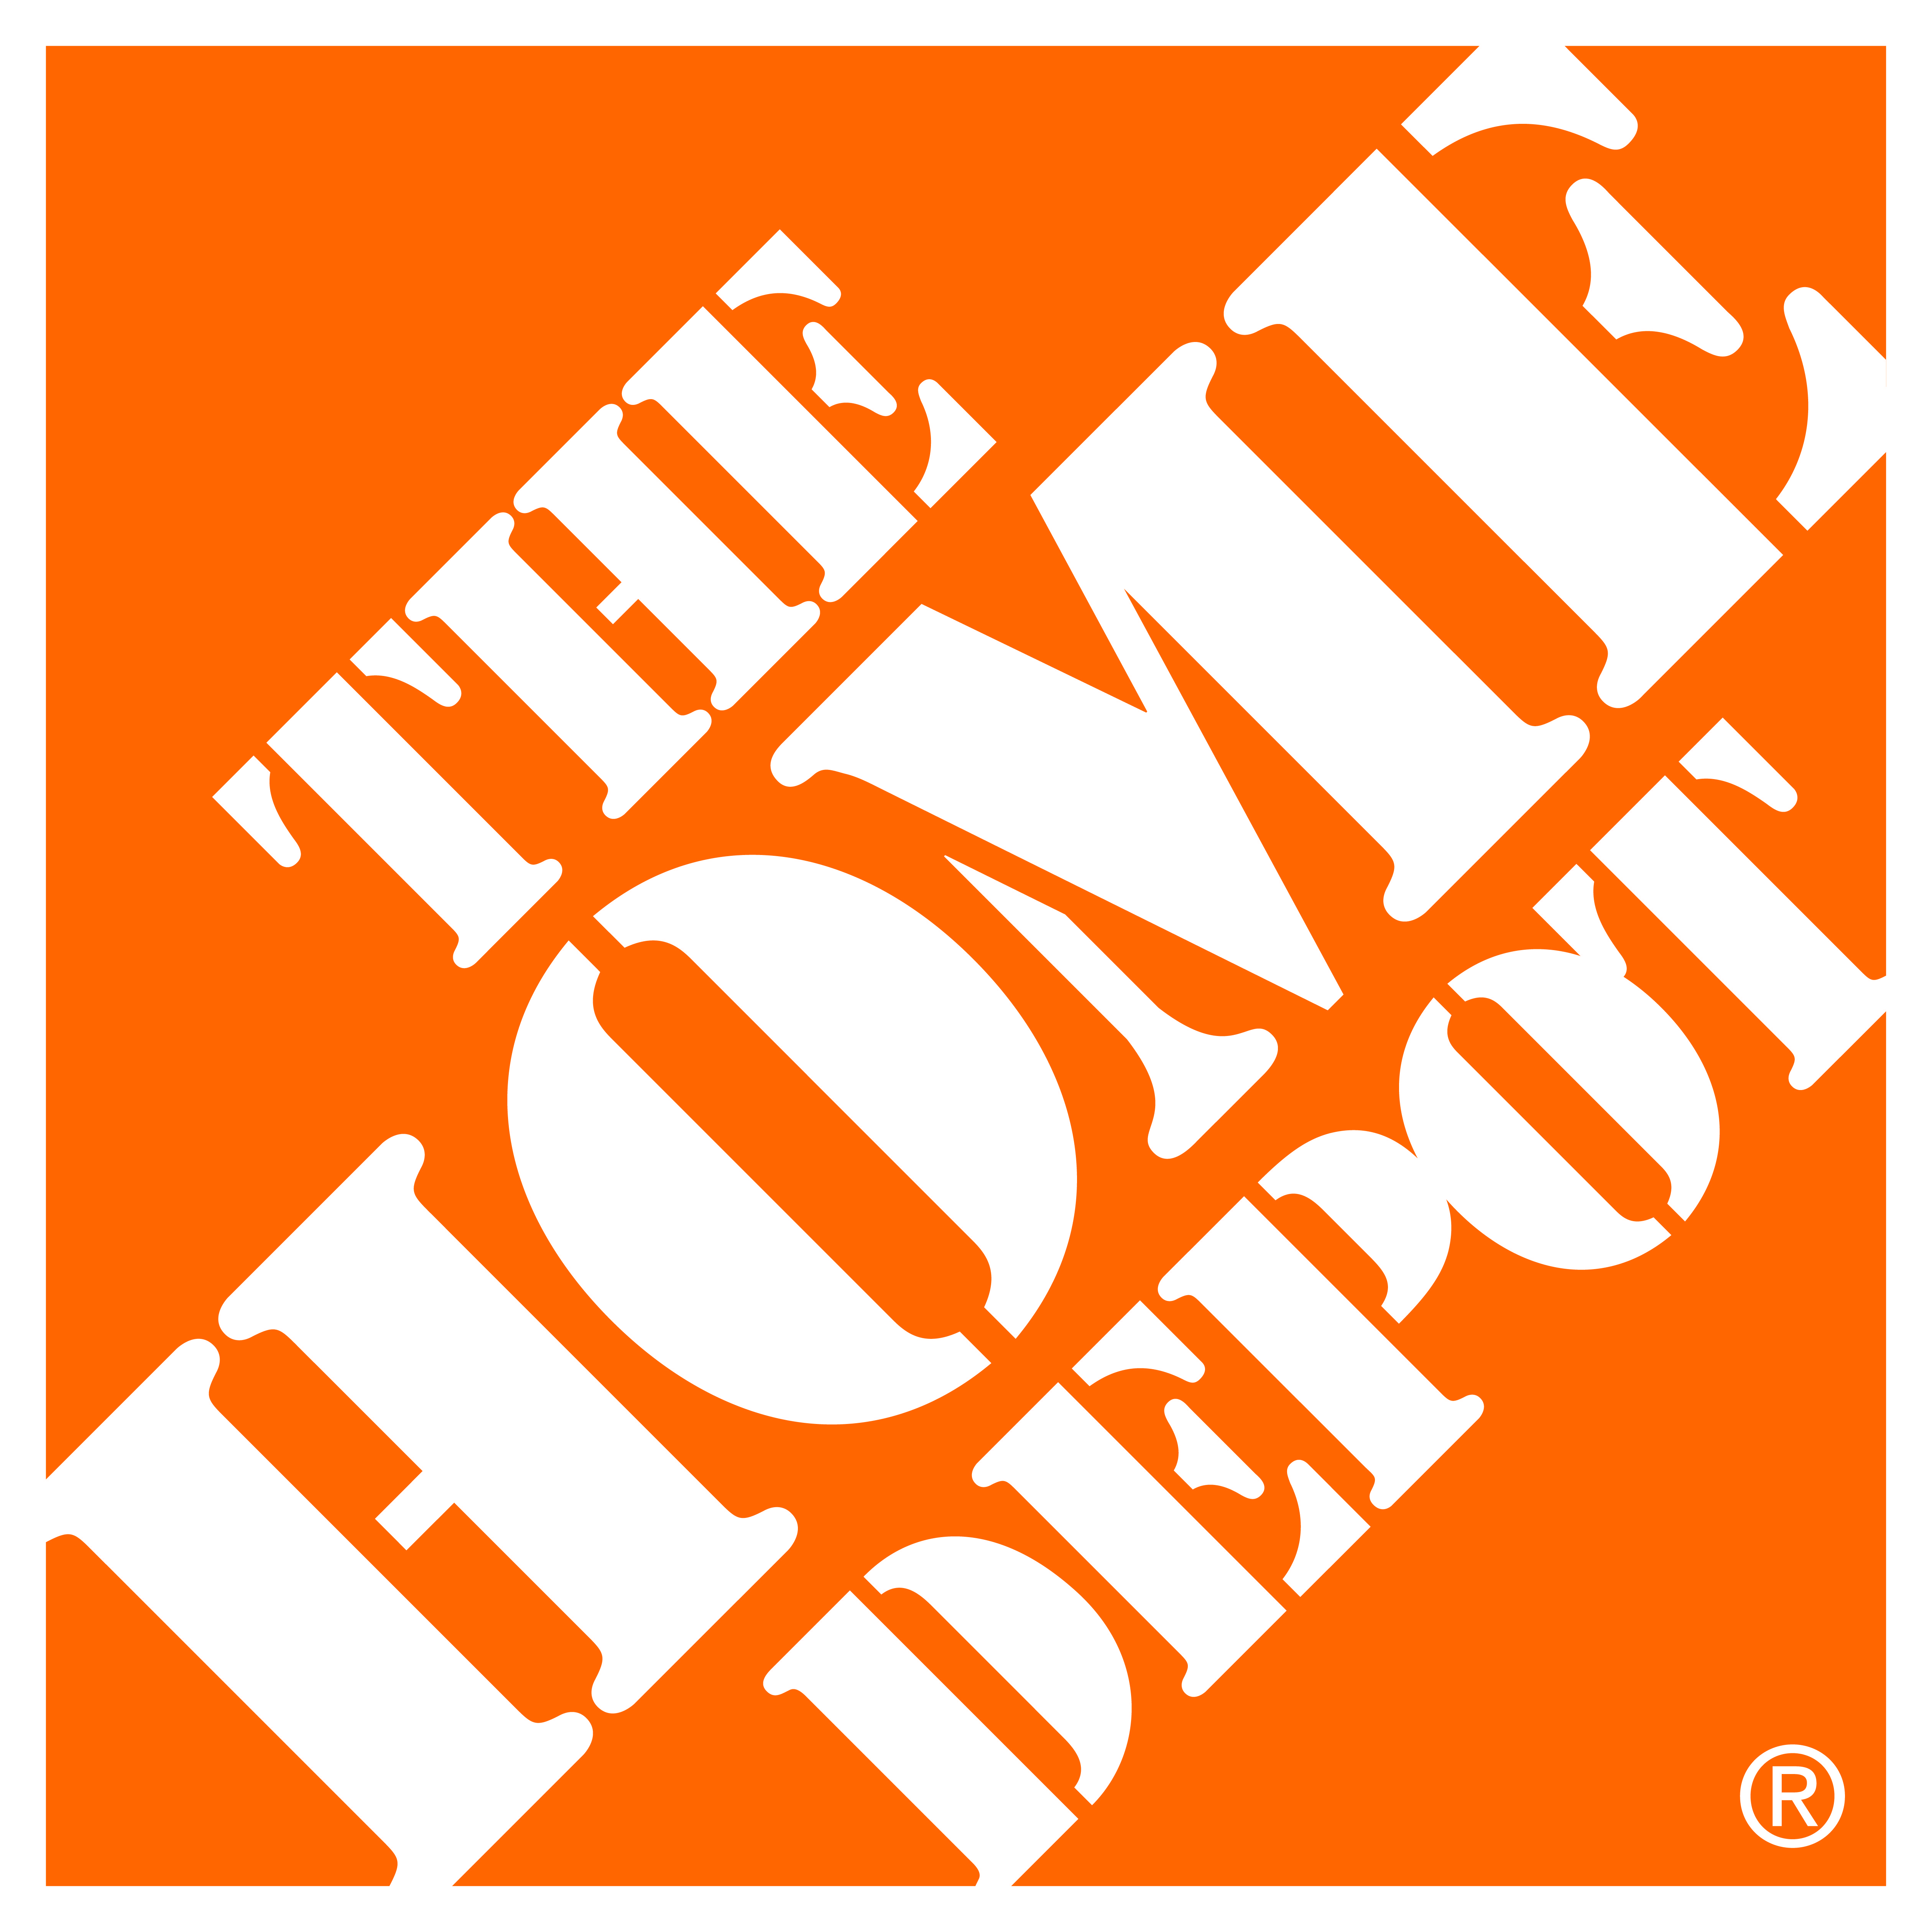 https___corporate.homedepot.com_sites_default_files_image_gallery_THD_logo